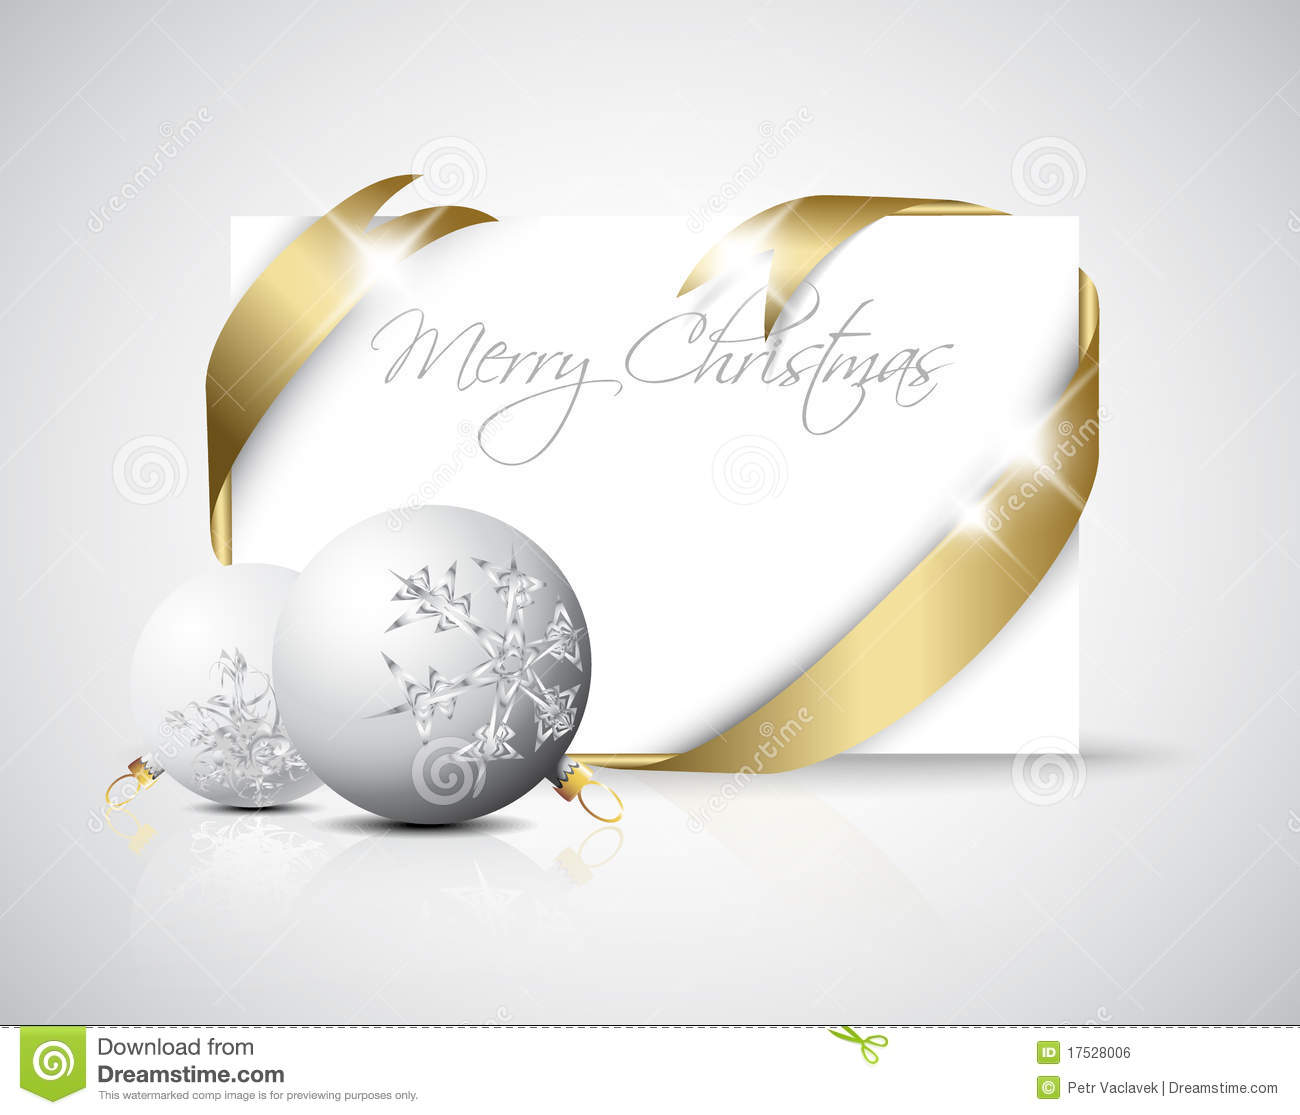 Luxury Christmas card stock illustration. Illustration of ball ...